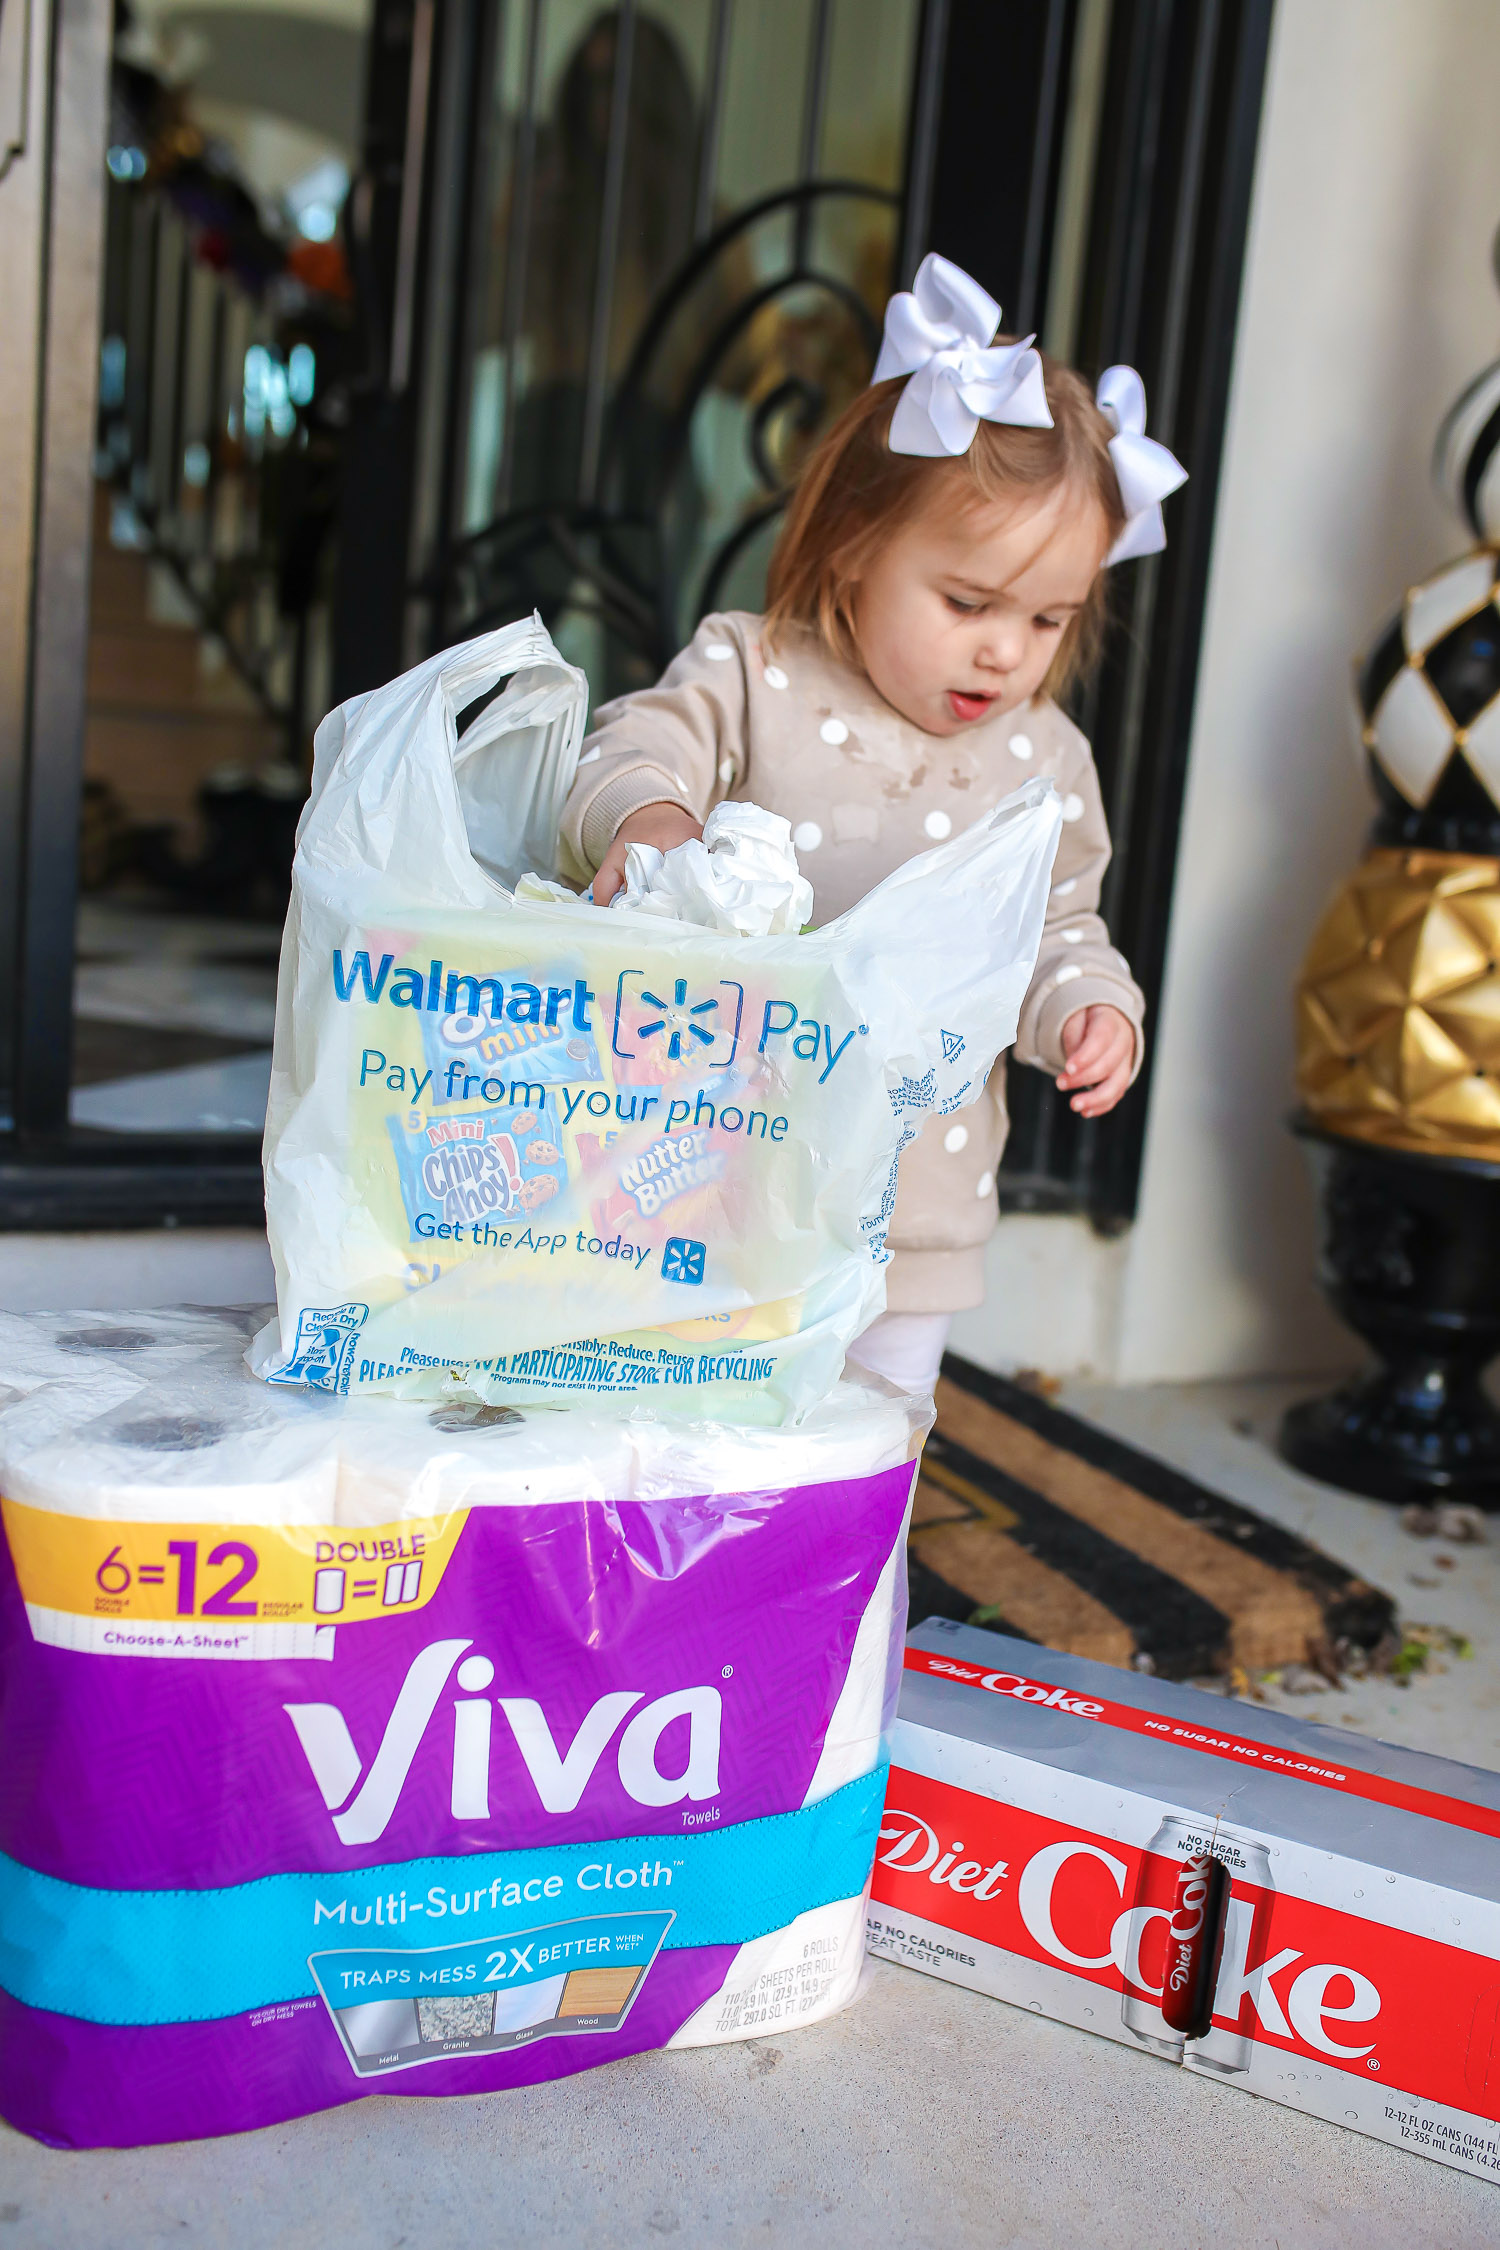 walmart online pickup and delivery review, easiest way to order groceries online, walmart online grocery order, emily ann gemma | Walmart Grocery Pickup Faq by top US lifestyle blog, The Sweetest Thing: image of Emily Gemma's daughter Sophie standing on their front porch next to a package of VIva toilet paper and a case of Diet Coke.